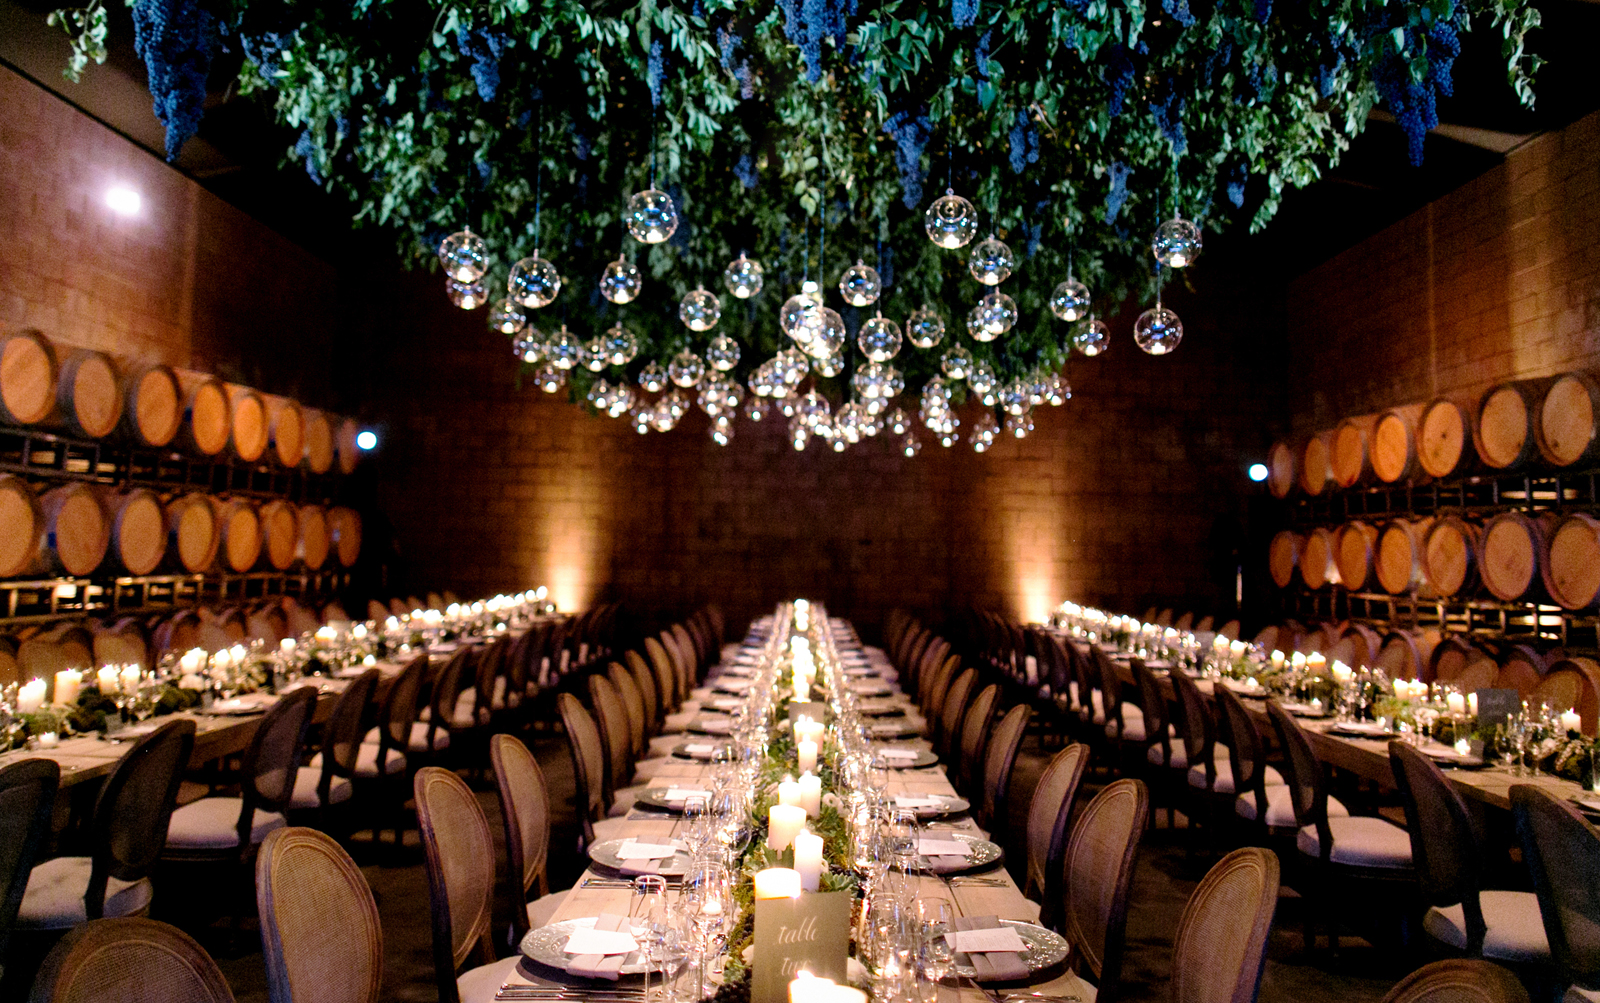 Wedding Trend Decorating With Glass Globes Spheres And